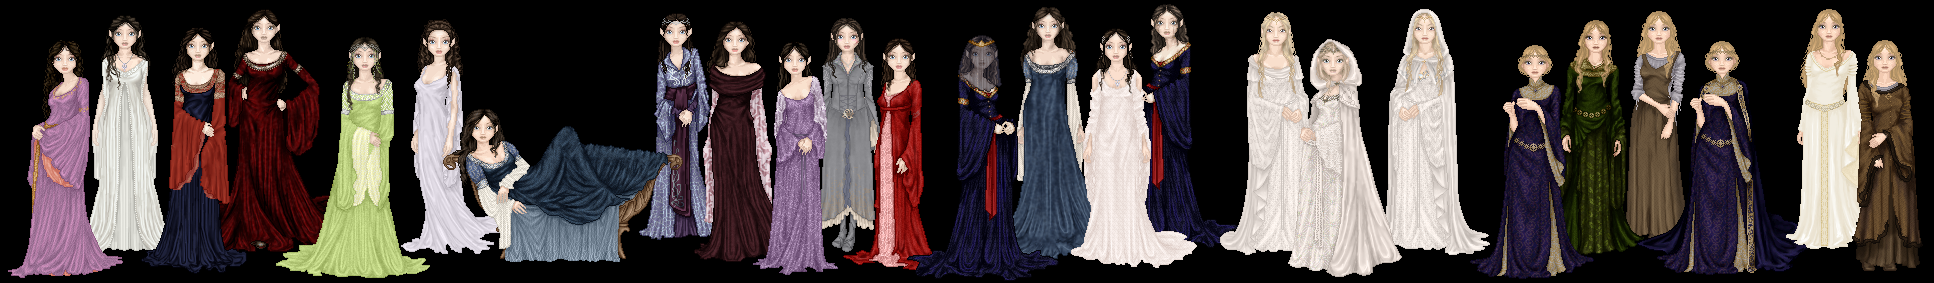 Lord of the Rings Gowns by tata-s-z on DeviantArt